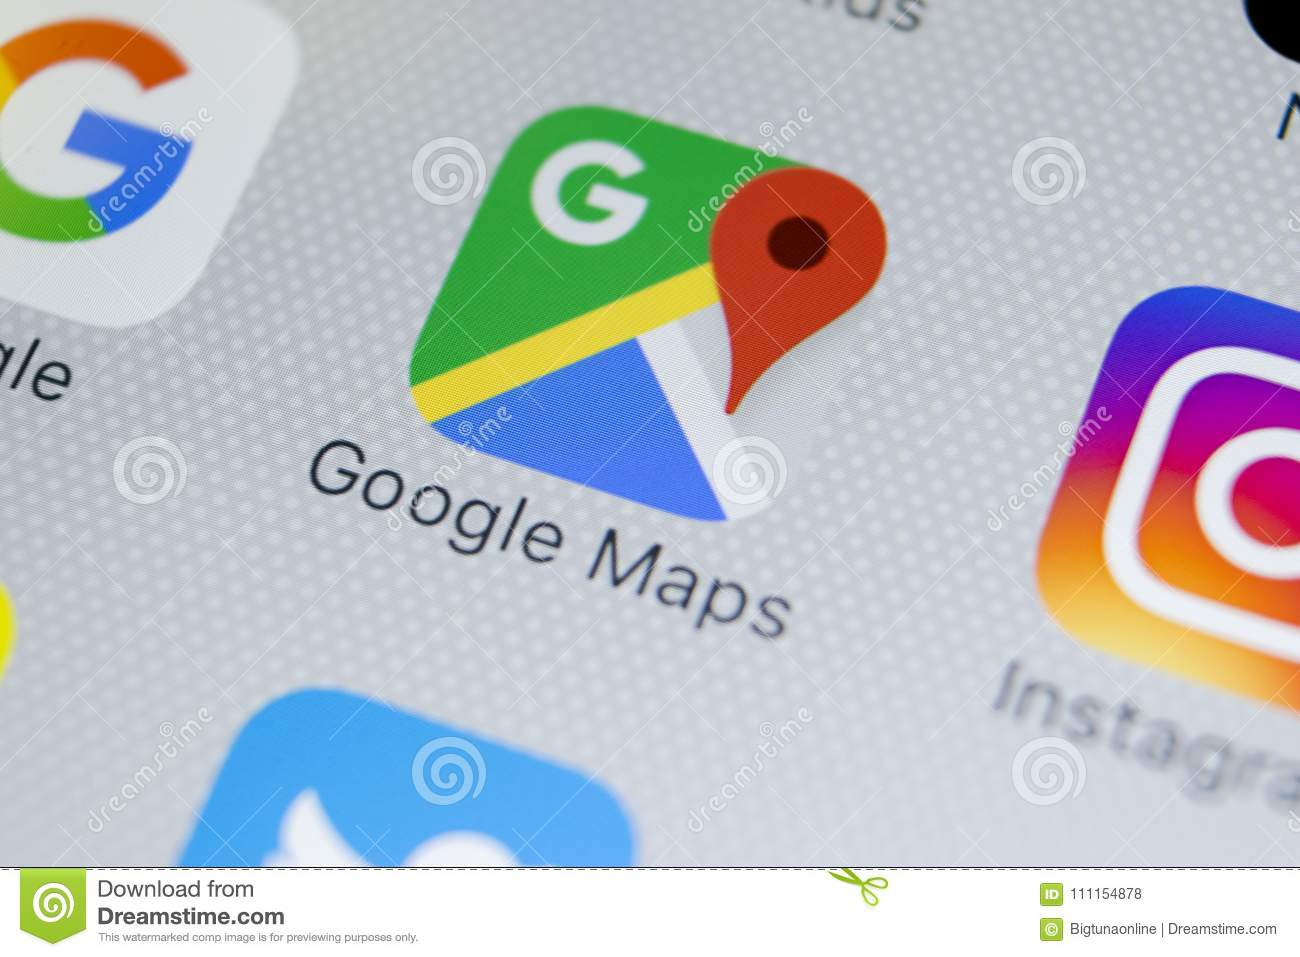 Google Maps Application Icon On Apple IPhone X Screen Close-up ... on google earth satellite maps, google maps united states, apple application, google mapquest, google maps find, google maps murder, pdf application, google maps europe, world map application, simple application, google maps street view, google maps china, google earth live search maps, google maps navigation, android application, google maps mexico, facebook application, technology application, google maps satellite maps, google maps icon,